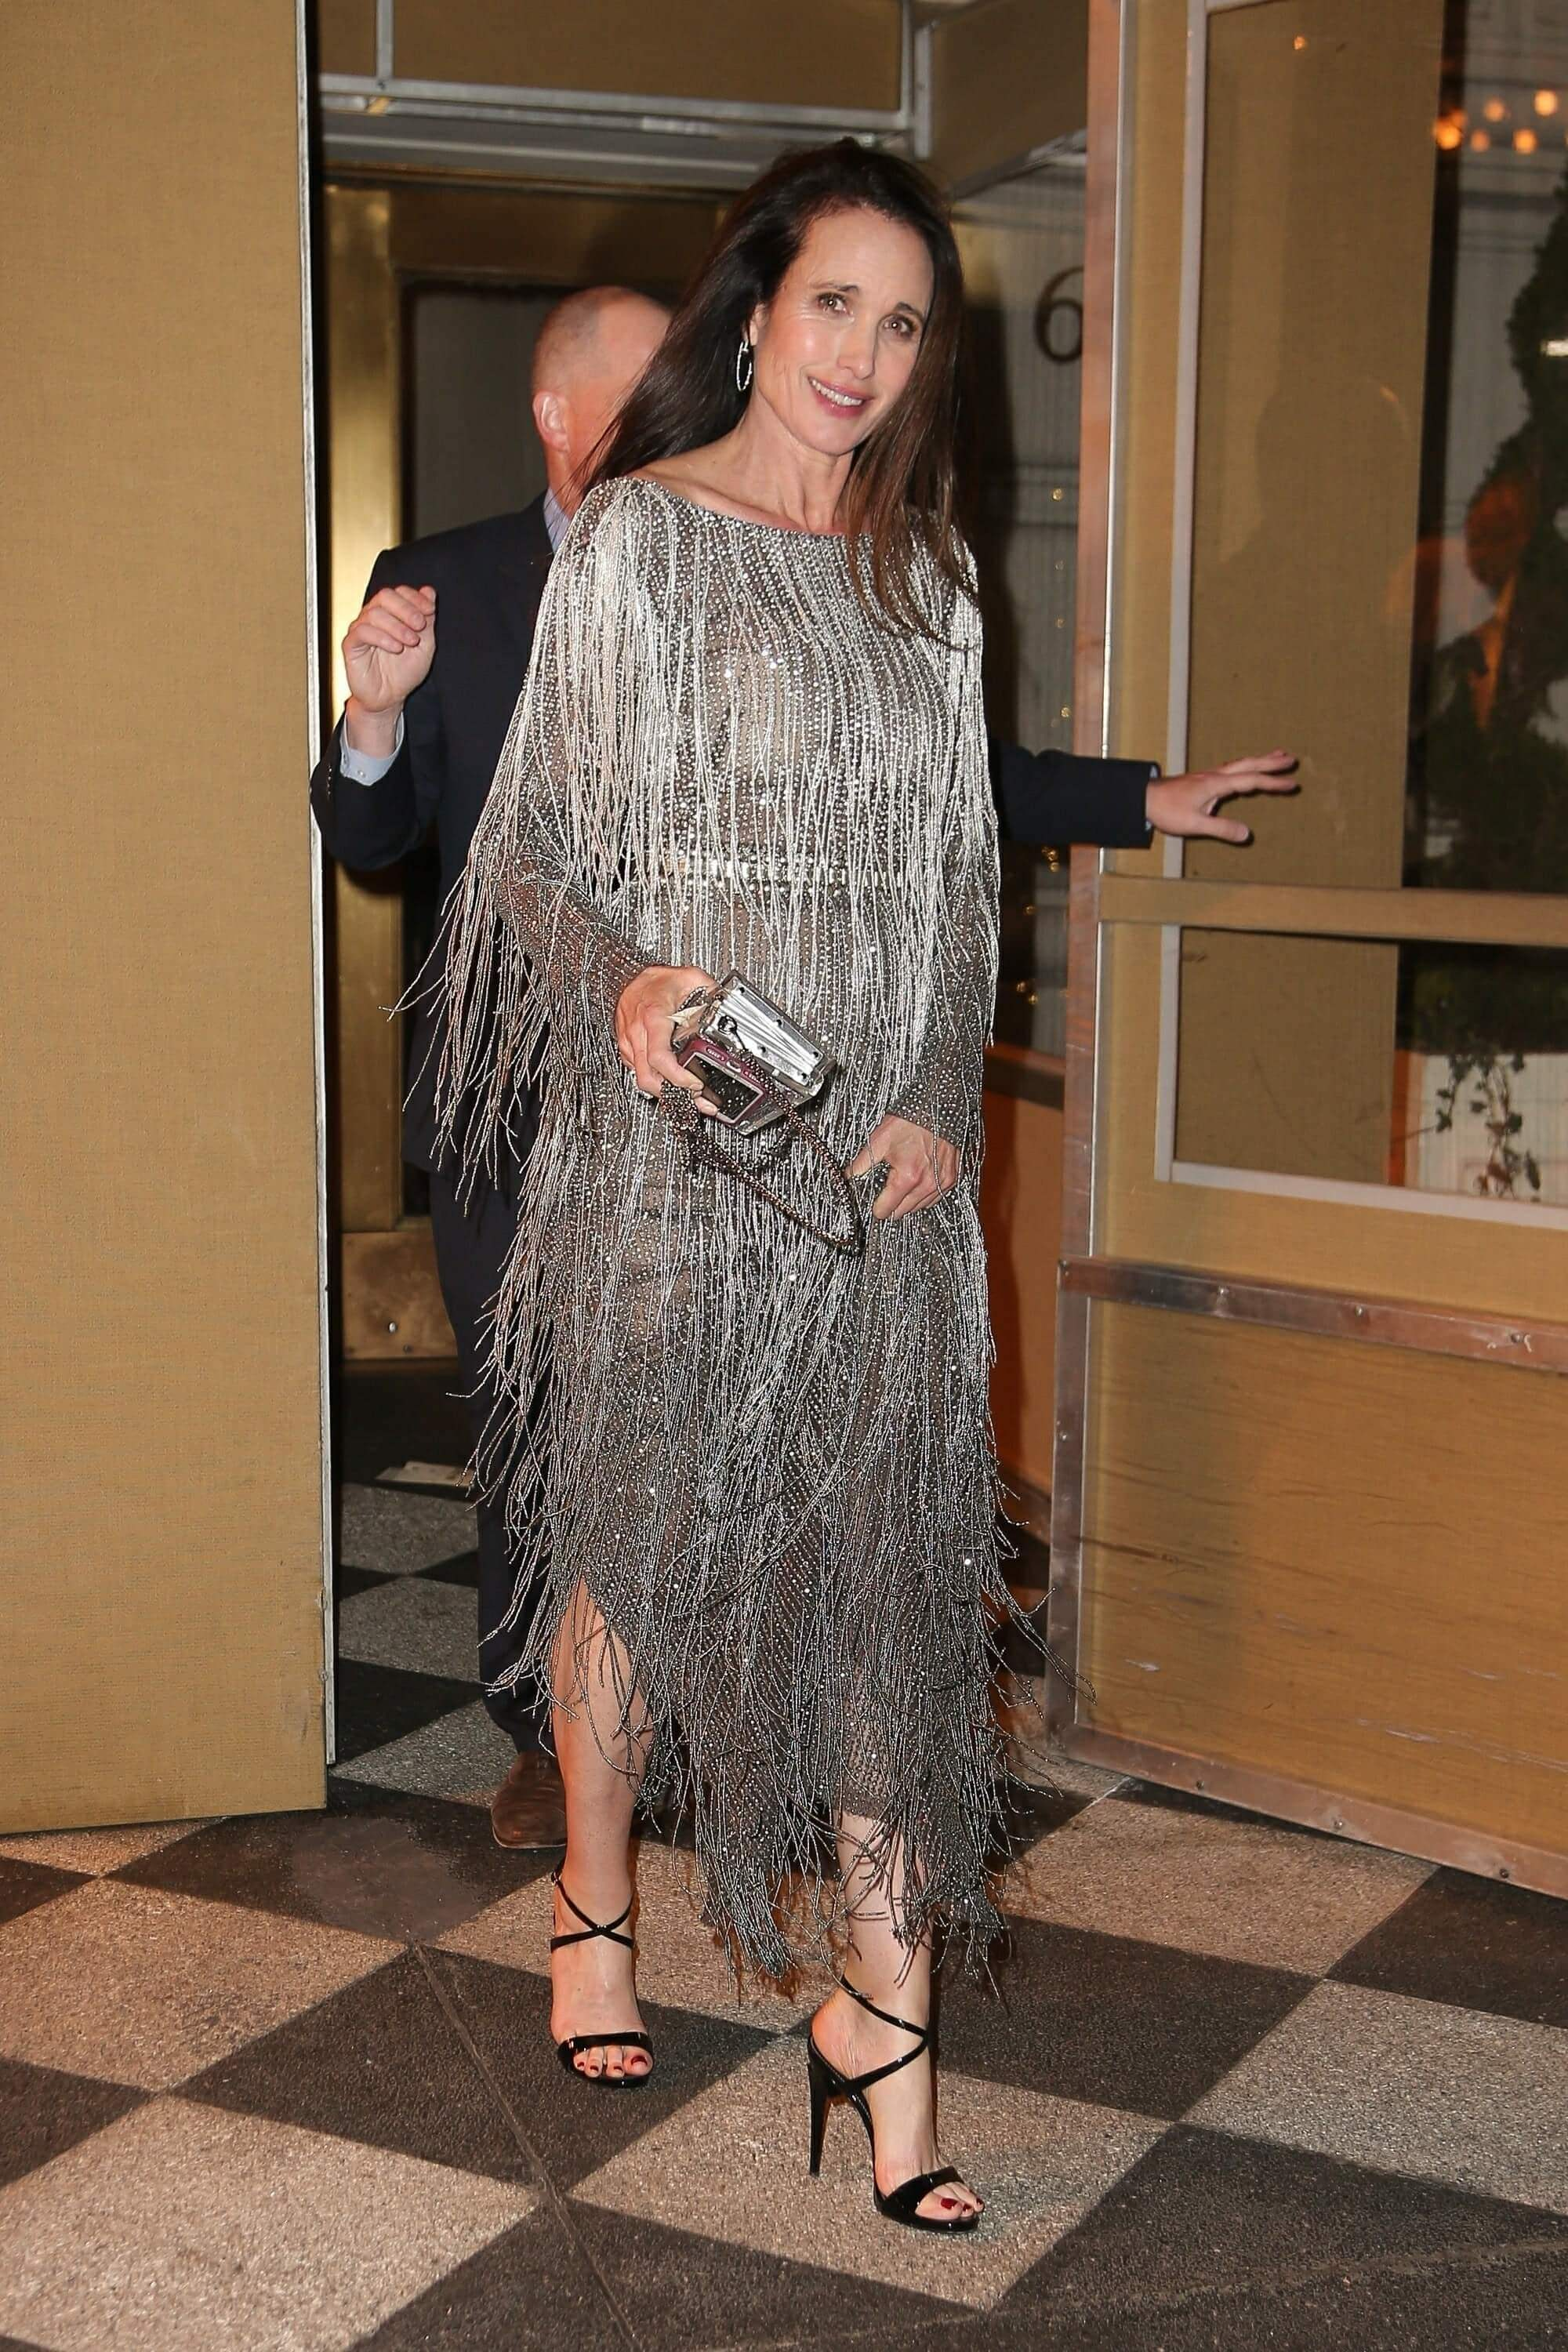 Andie Macdonald 49 hot pictures of andie macdowell will inspire you to hit